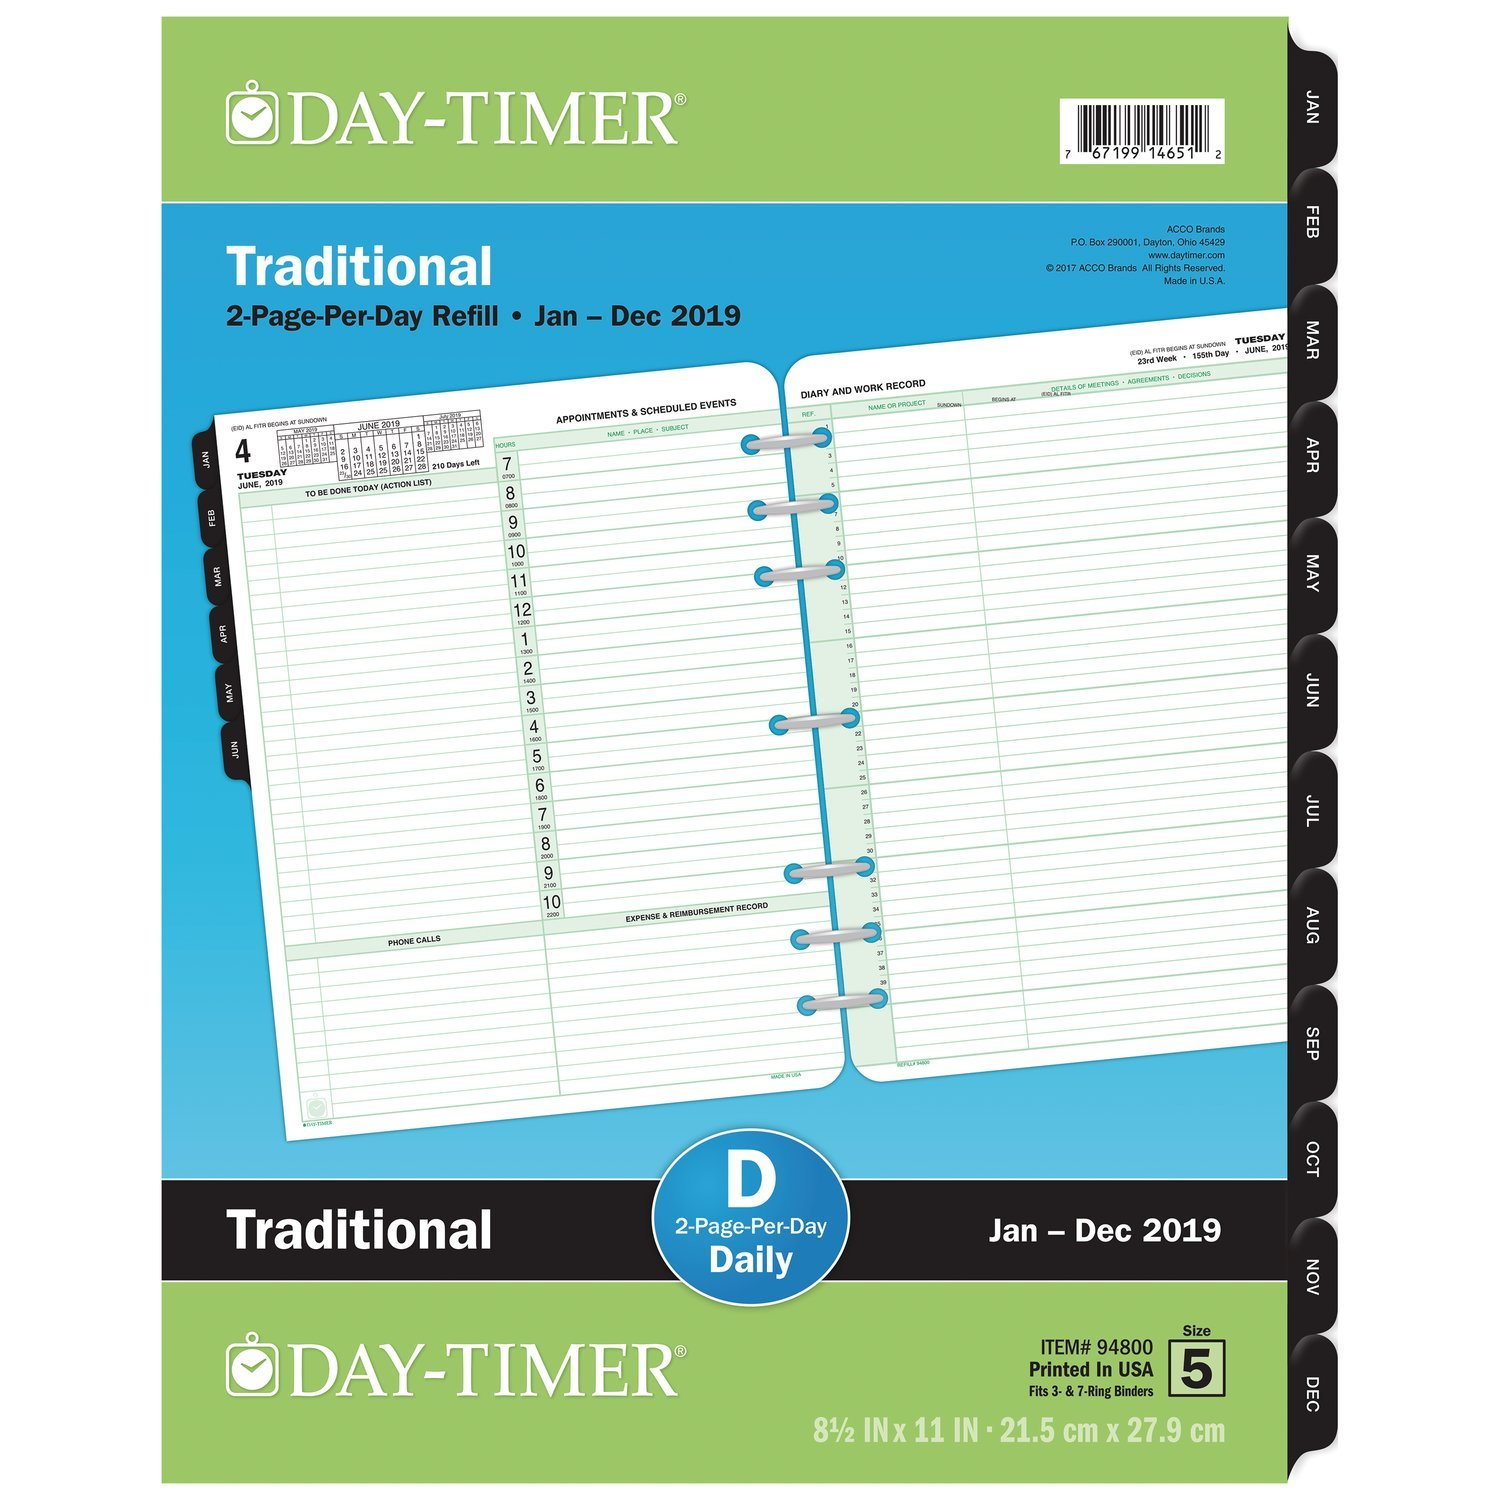 Day-Timer 2019 Planner Refill, 8-1/2'' x 11'', Folio Size 5, Two Pages Per Day, Loose Leaf (94800)